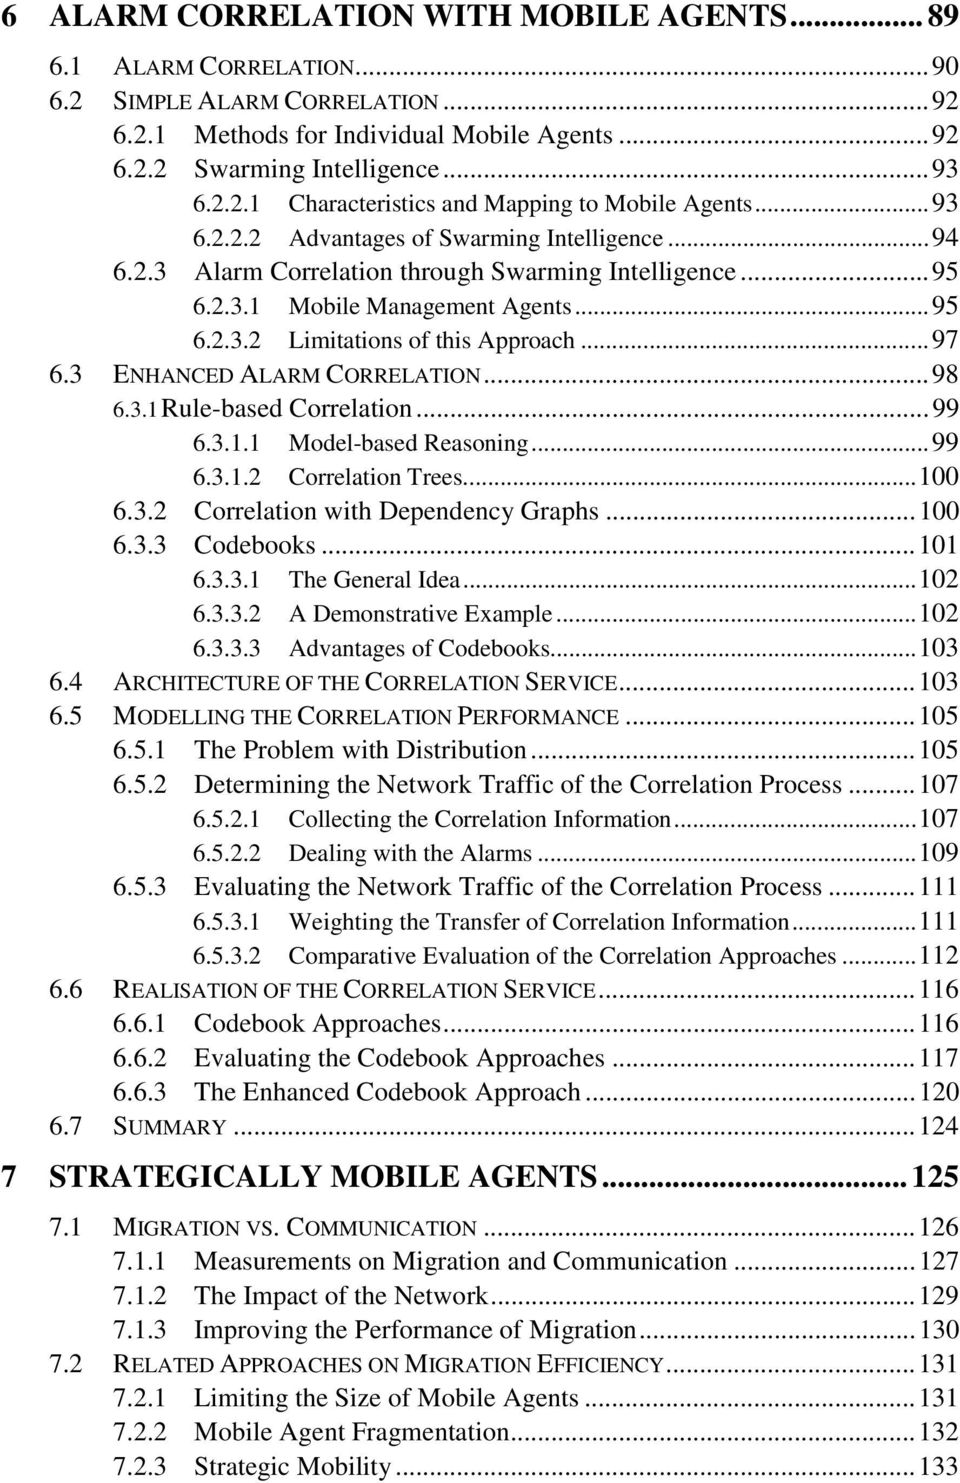 3 ENHANCED ALARM CORRELATION...98 6.3.1 Rule-based Correlation...99 6.3.1.1 Model-based Reasoning...99 6.3.1.2 Correlation Trees...100 6.3.2 Correlation with Dependency Graphs...100 6.3.3 Codebooks.